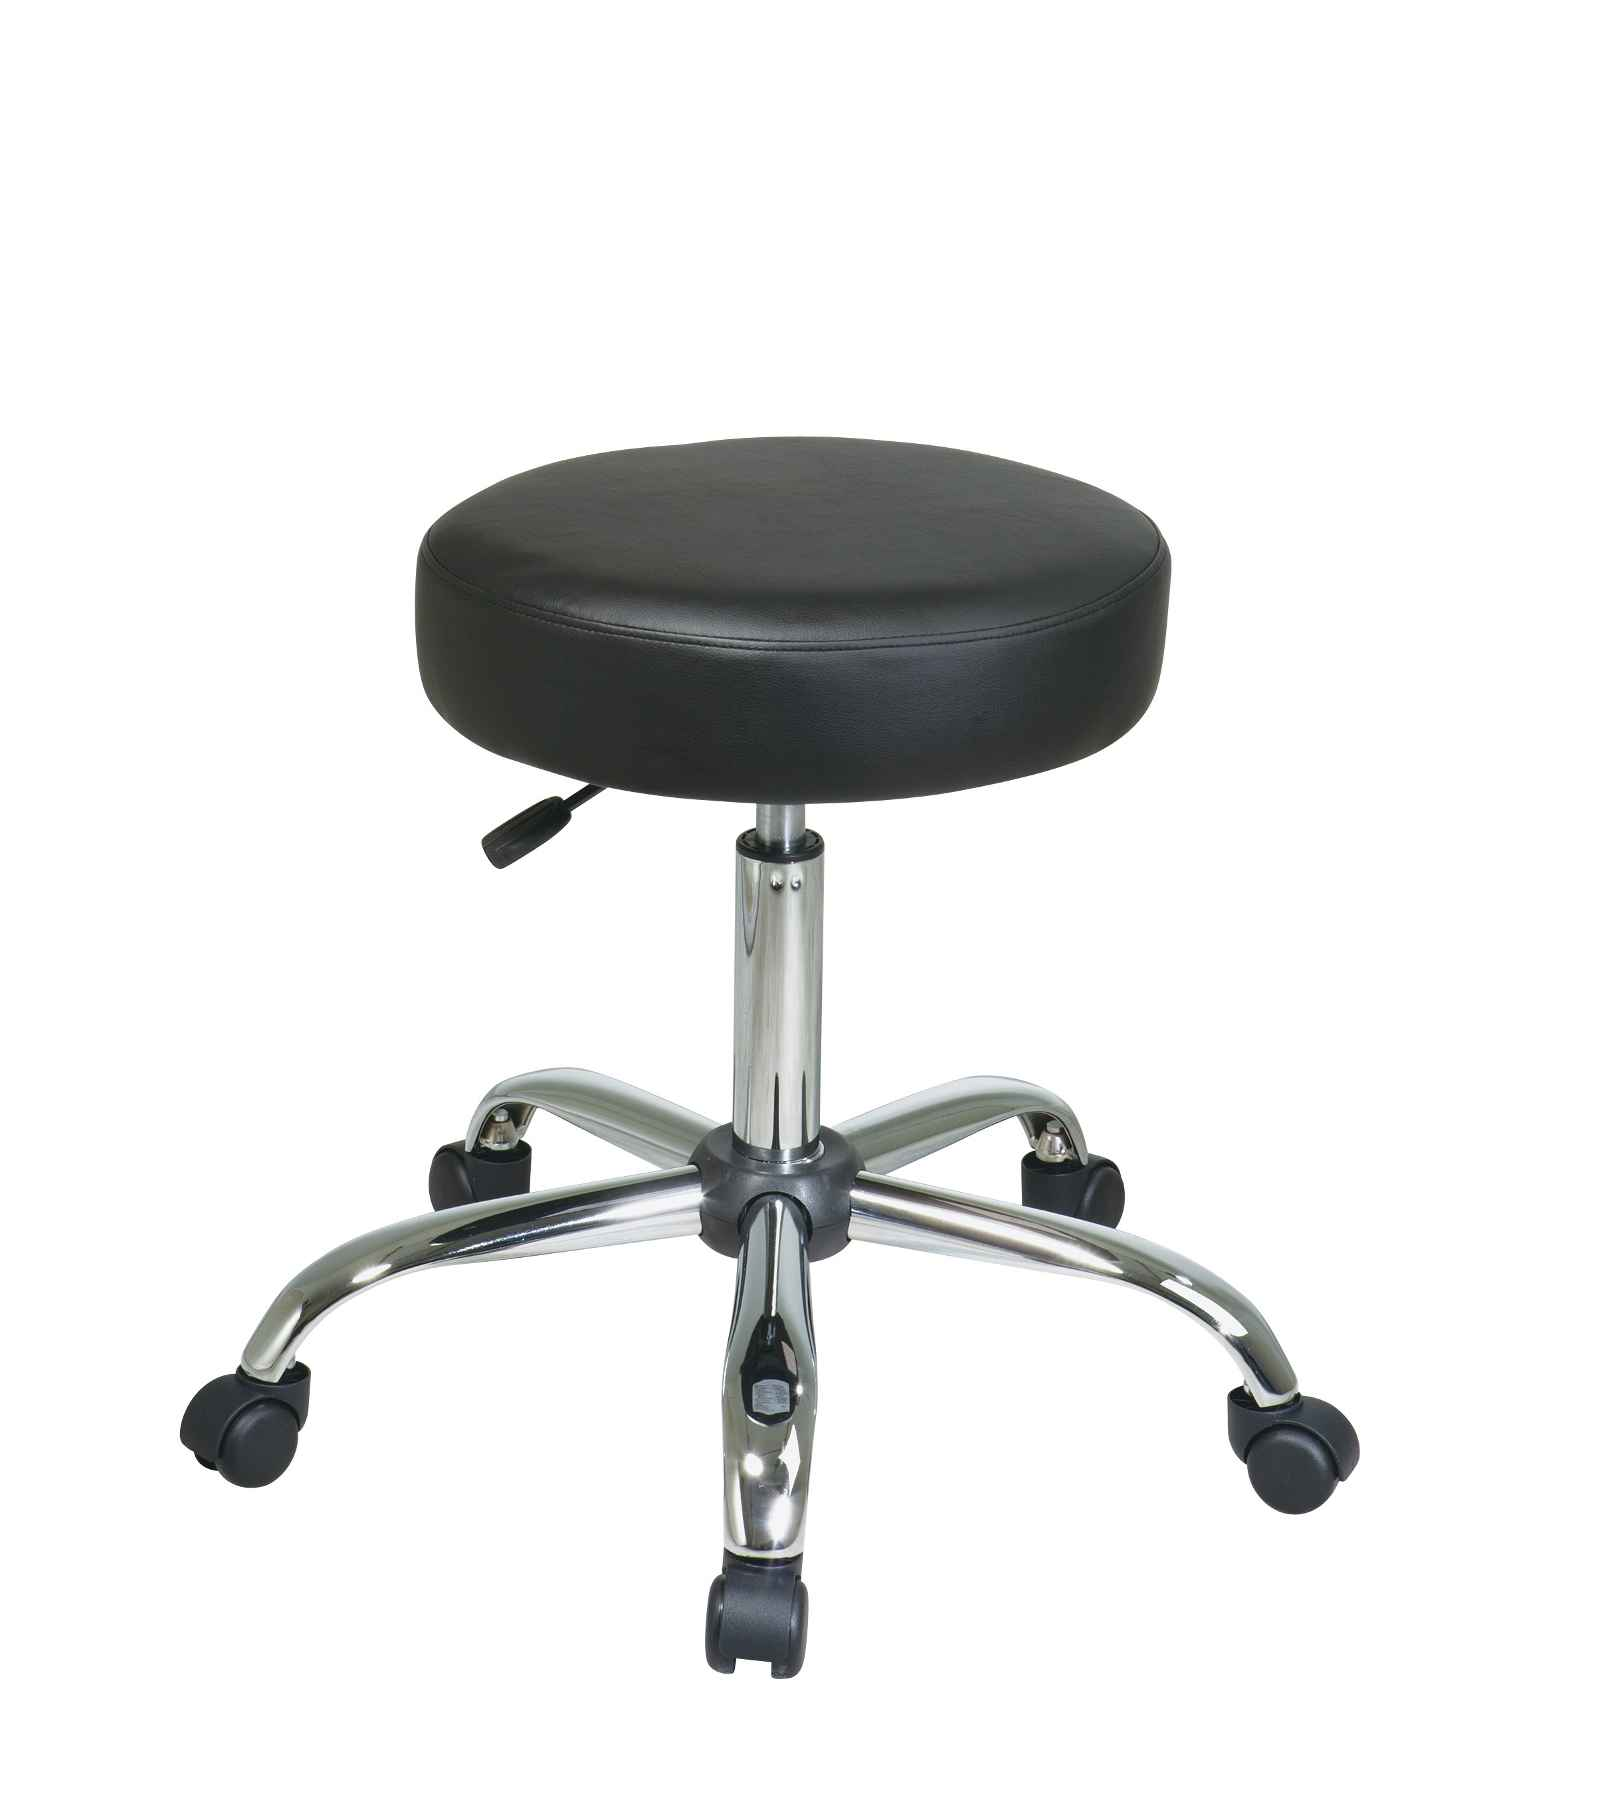 Office Star Pneumatic Office Drafting Chair